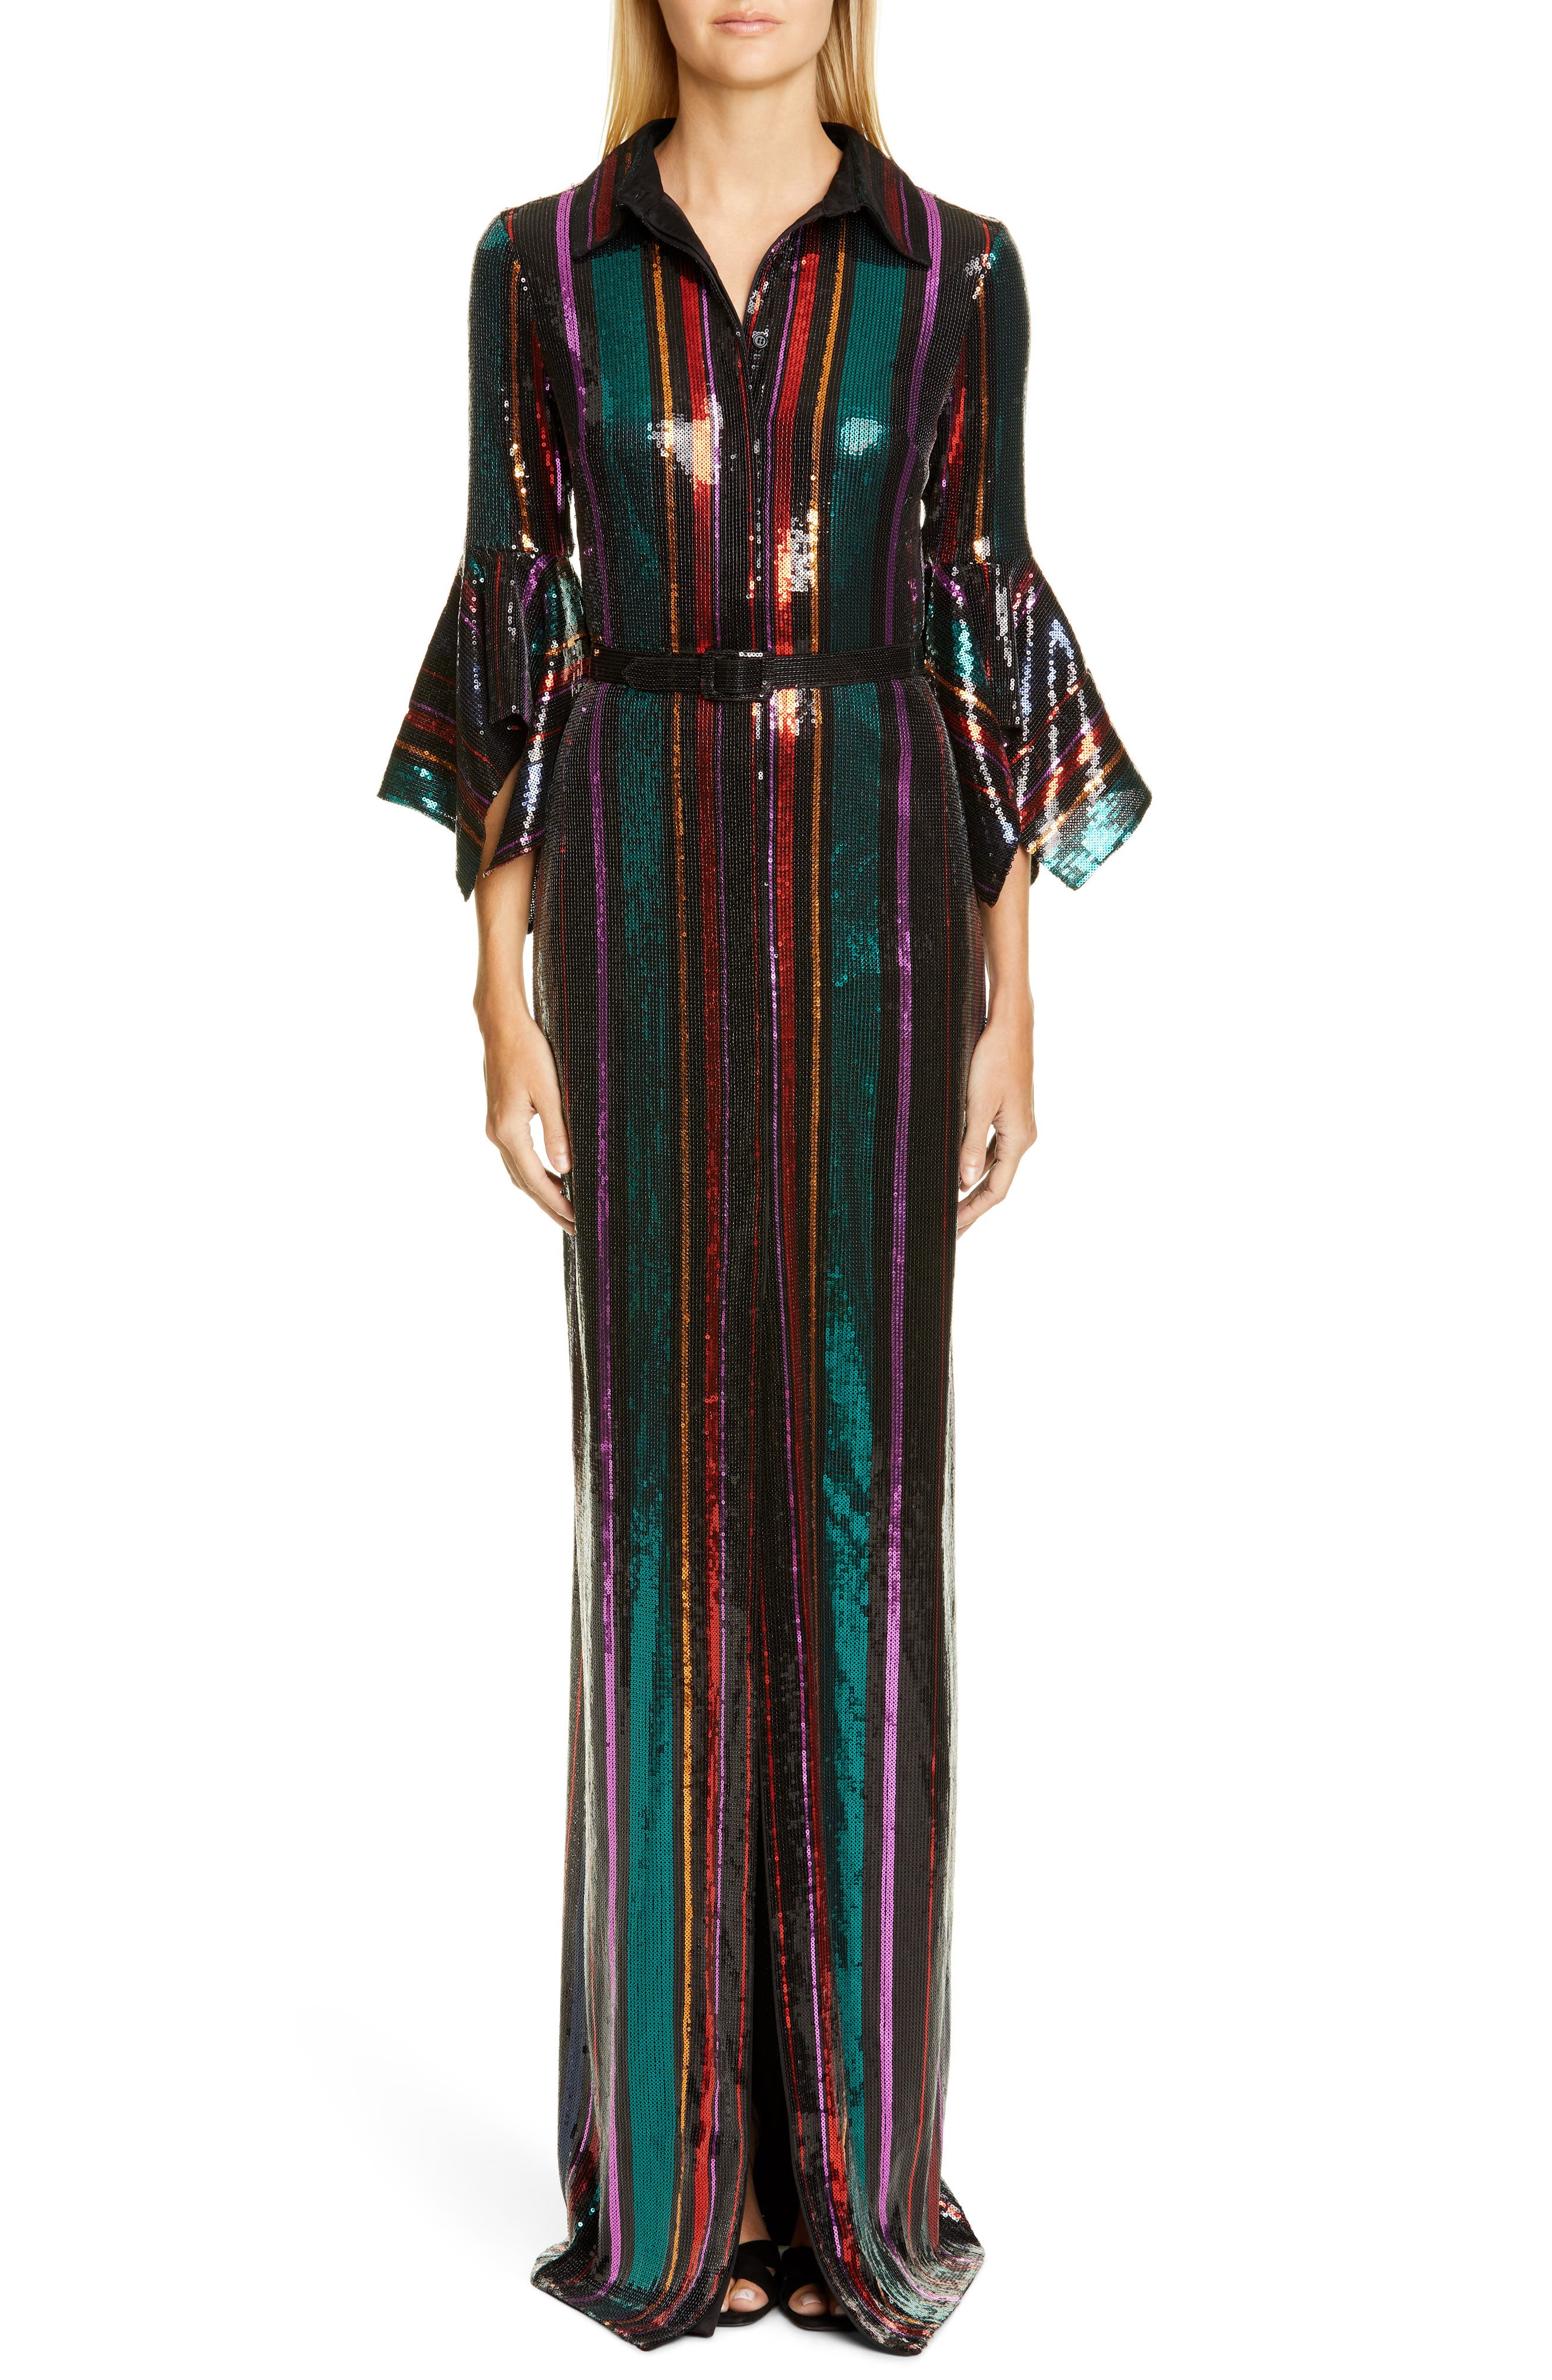 70s Prom, Formal, Evening, Party Dresses Womens Badgley Mischka Sequin Stripe Gown Size 6 - Black $950.00 AT vintagedancer.com